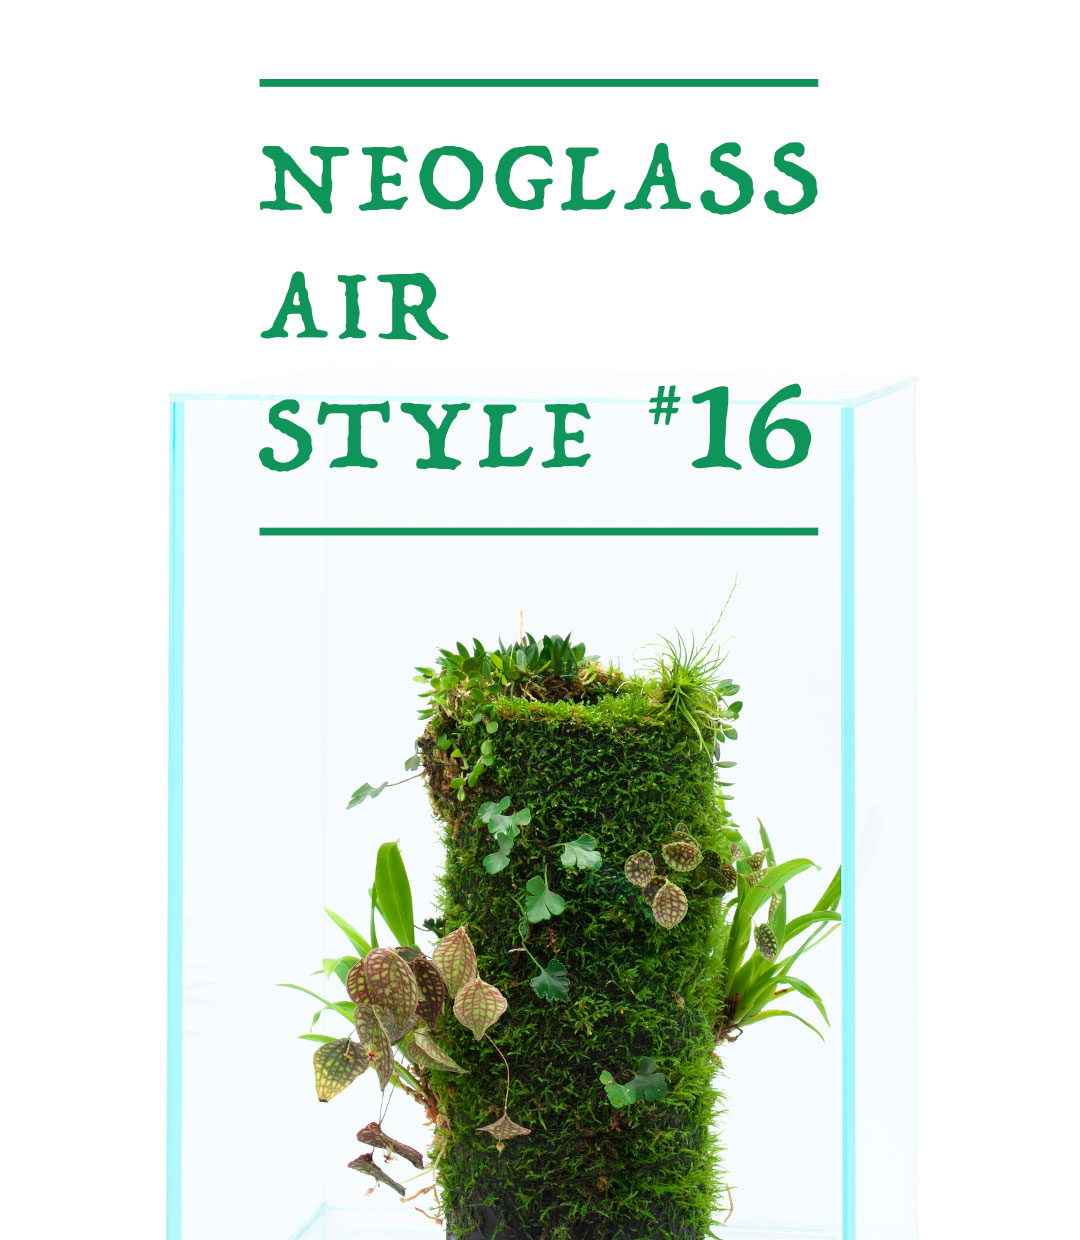 NEO GLASS AIR STYLE 'Longing For the Natural Habitat'